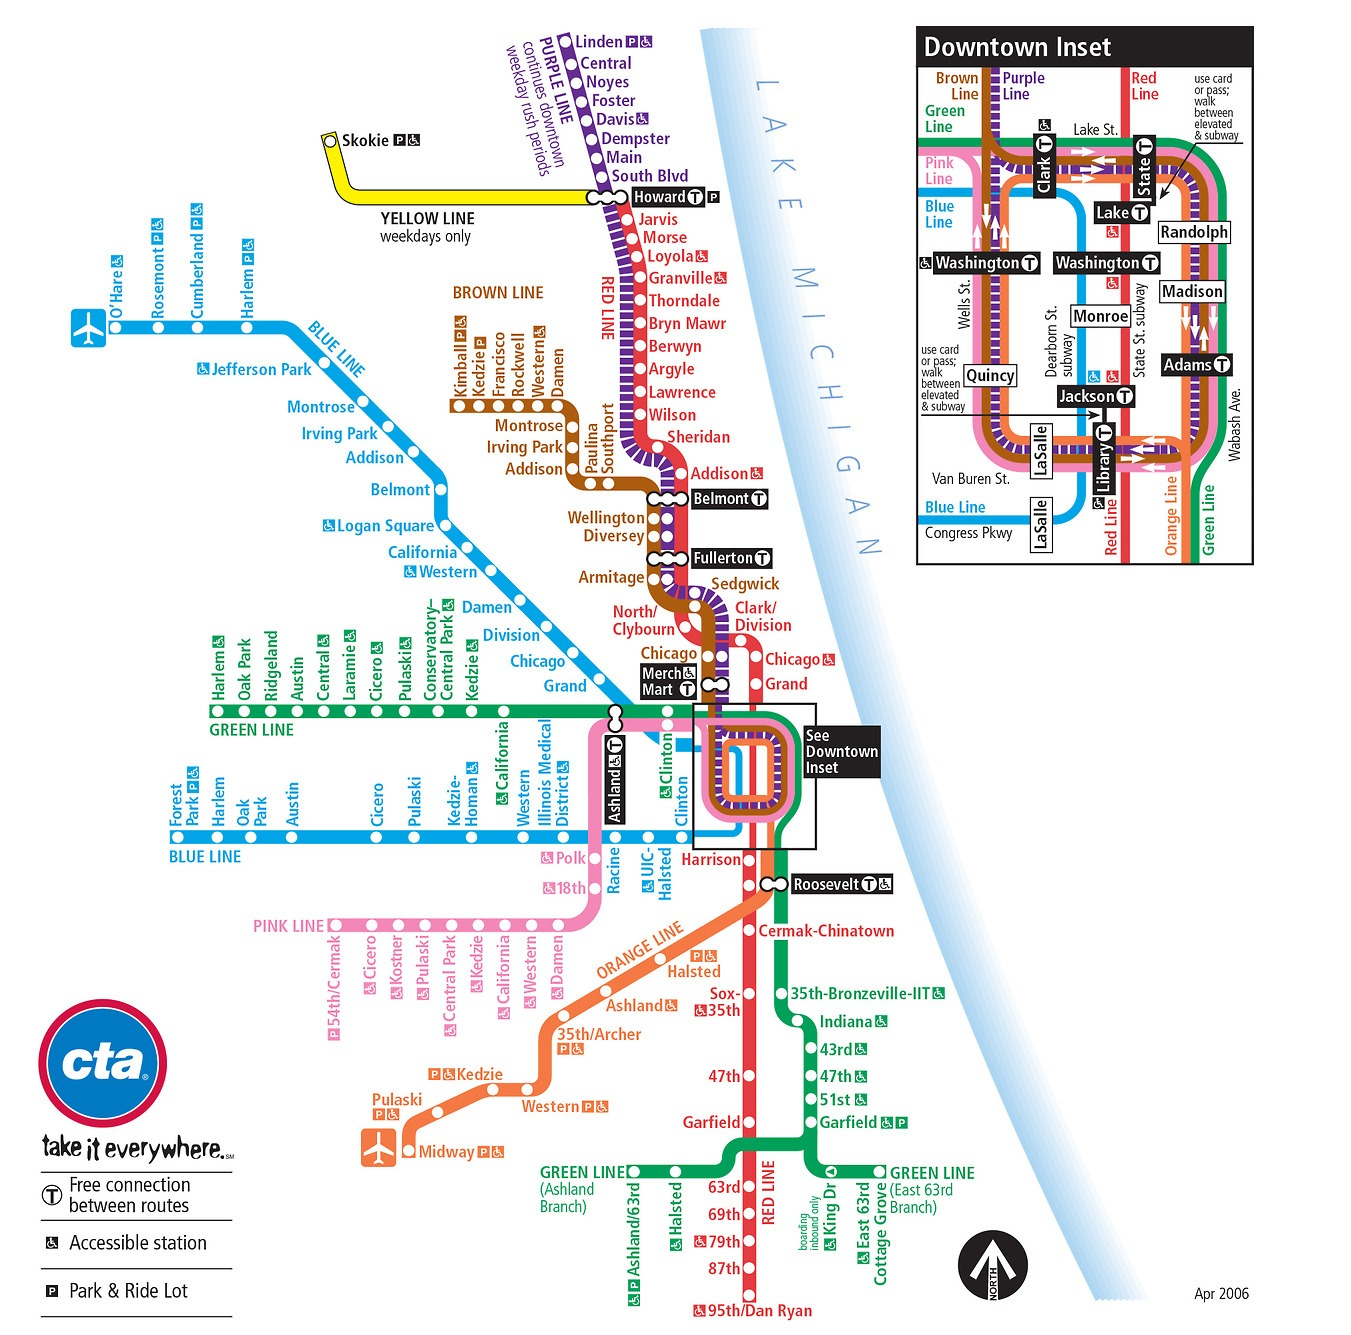 CTA Map – CTA and Metra Guide Chicago Public Transportation Map on the l chicago map, chicago subway station map, chicago l train system, chicago el map, austin metro transit map, chicago red line train routes, chicago metra blue line map, san francisco transportation map, uptown map, chicago blue line train map, chicago cta map with streets, chicago orange line map, chicago illinois state map, chicago train routes map, chicago supermarkets map, chicago rail map, orlando park il map, philadelphia location on a map,